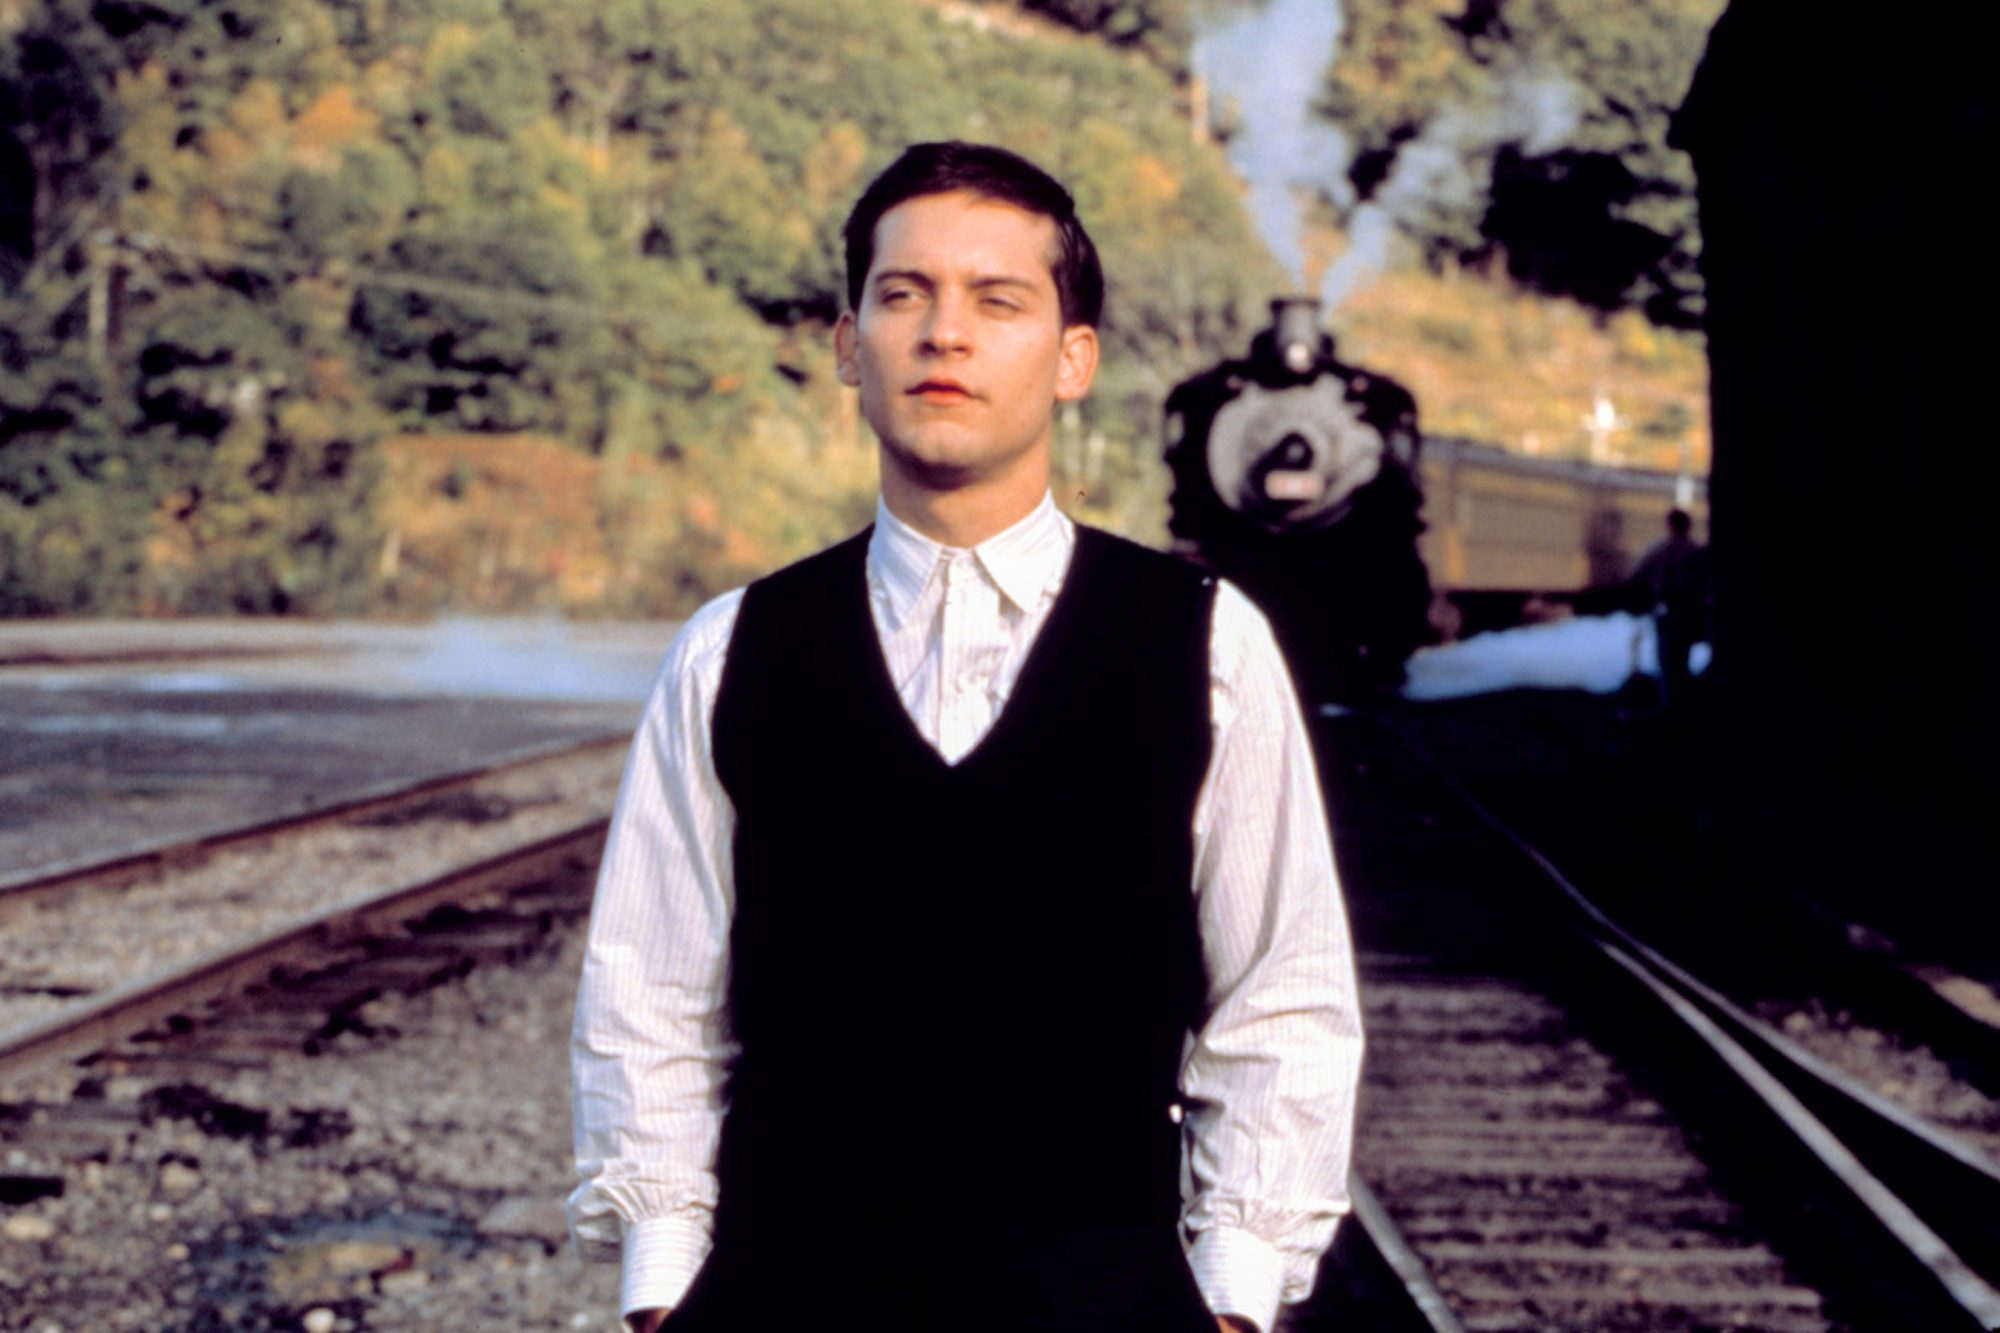 CIDER HOUSE RULES, Tobey Maguire, 1999